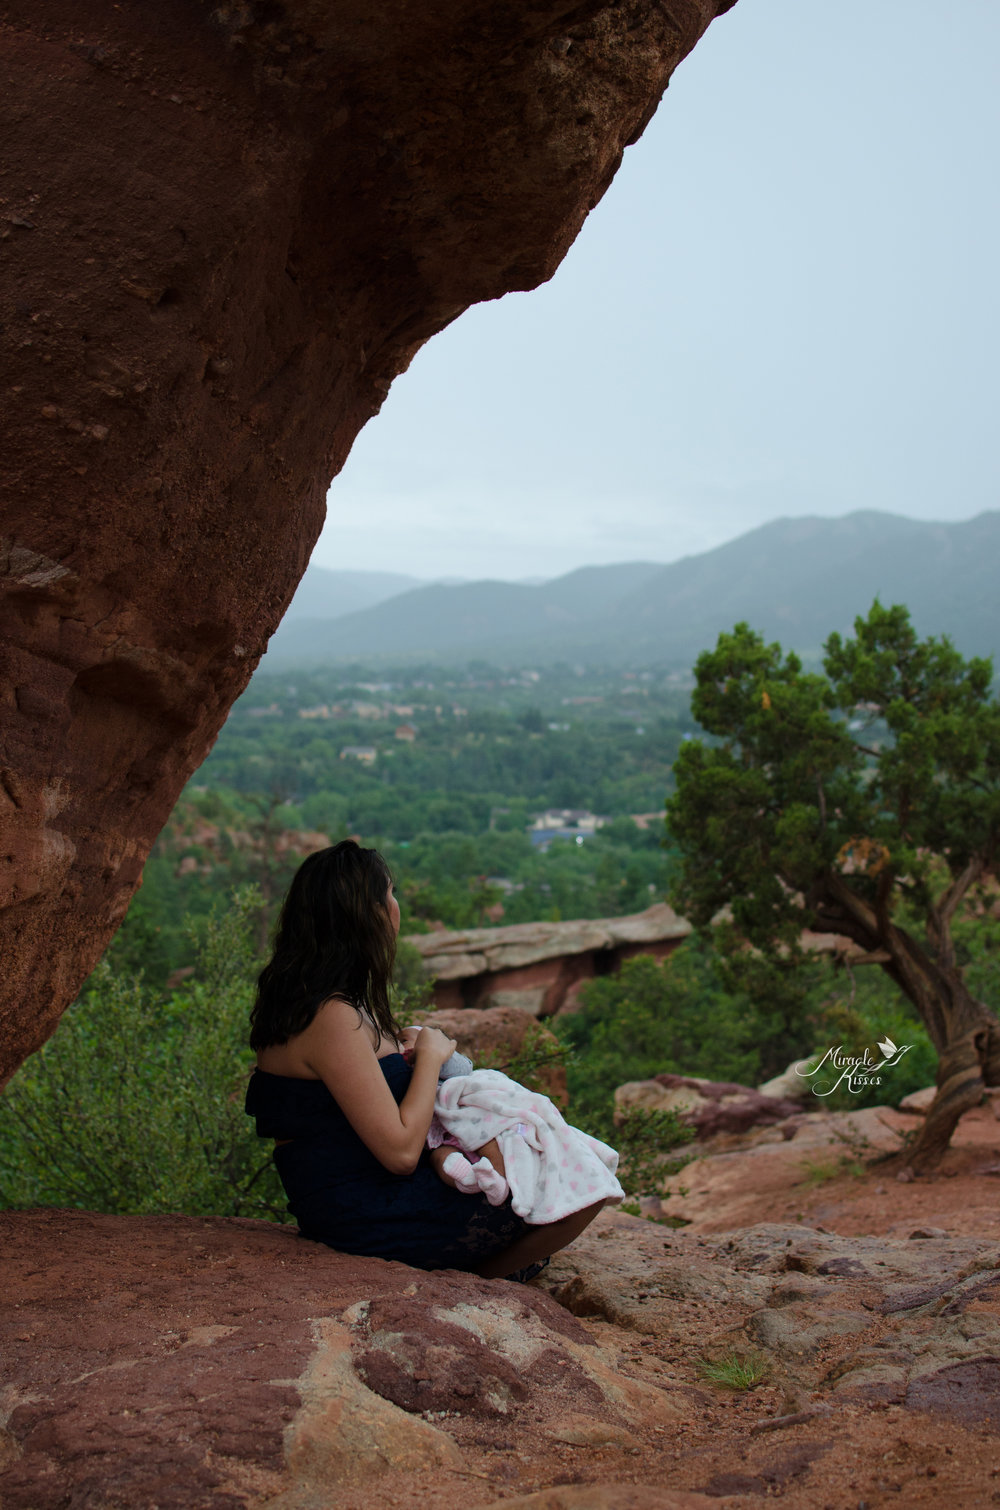 garden of the gods breastfeeding, rain photo session, nursing for the future